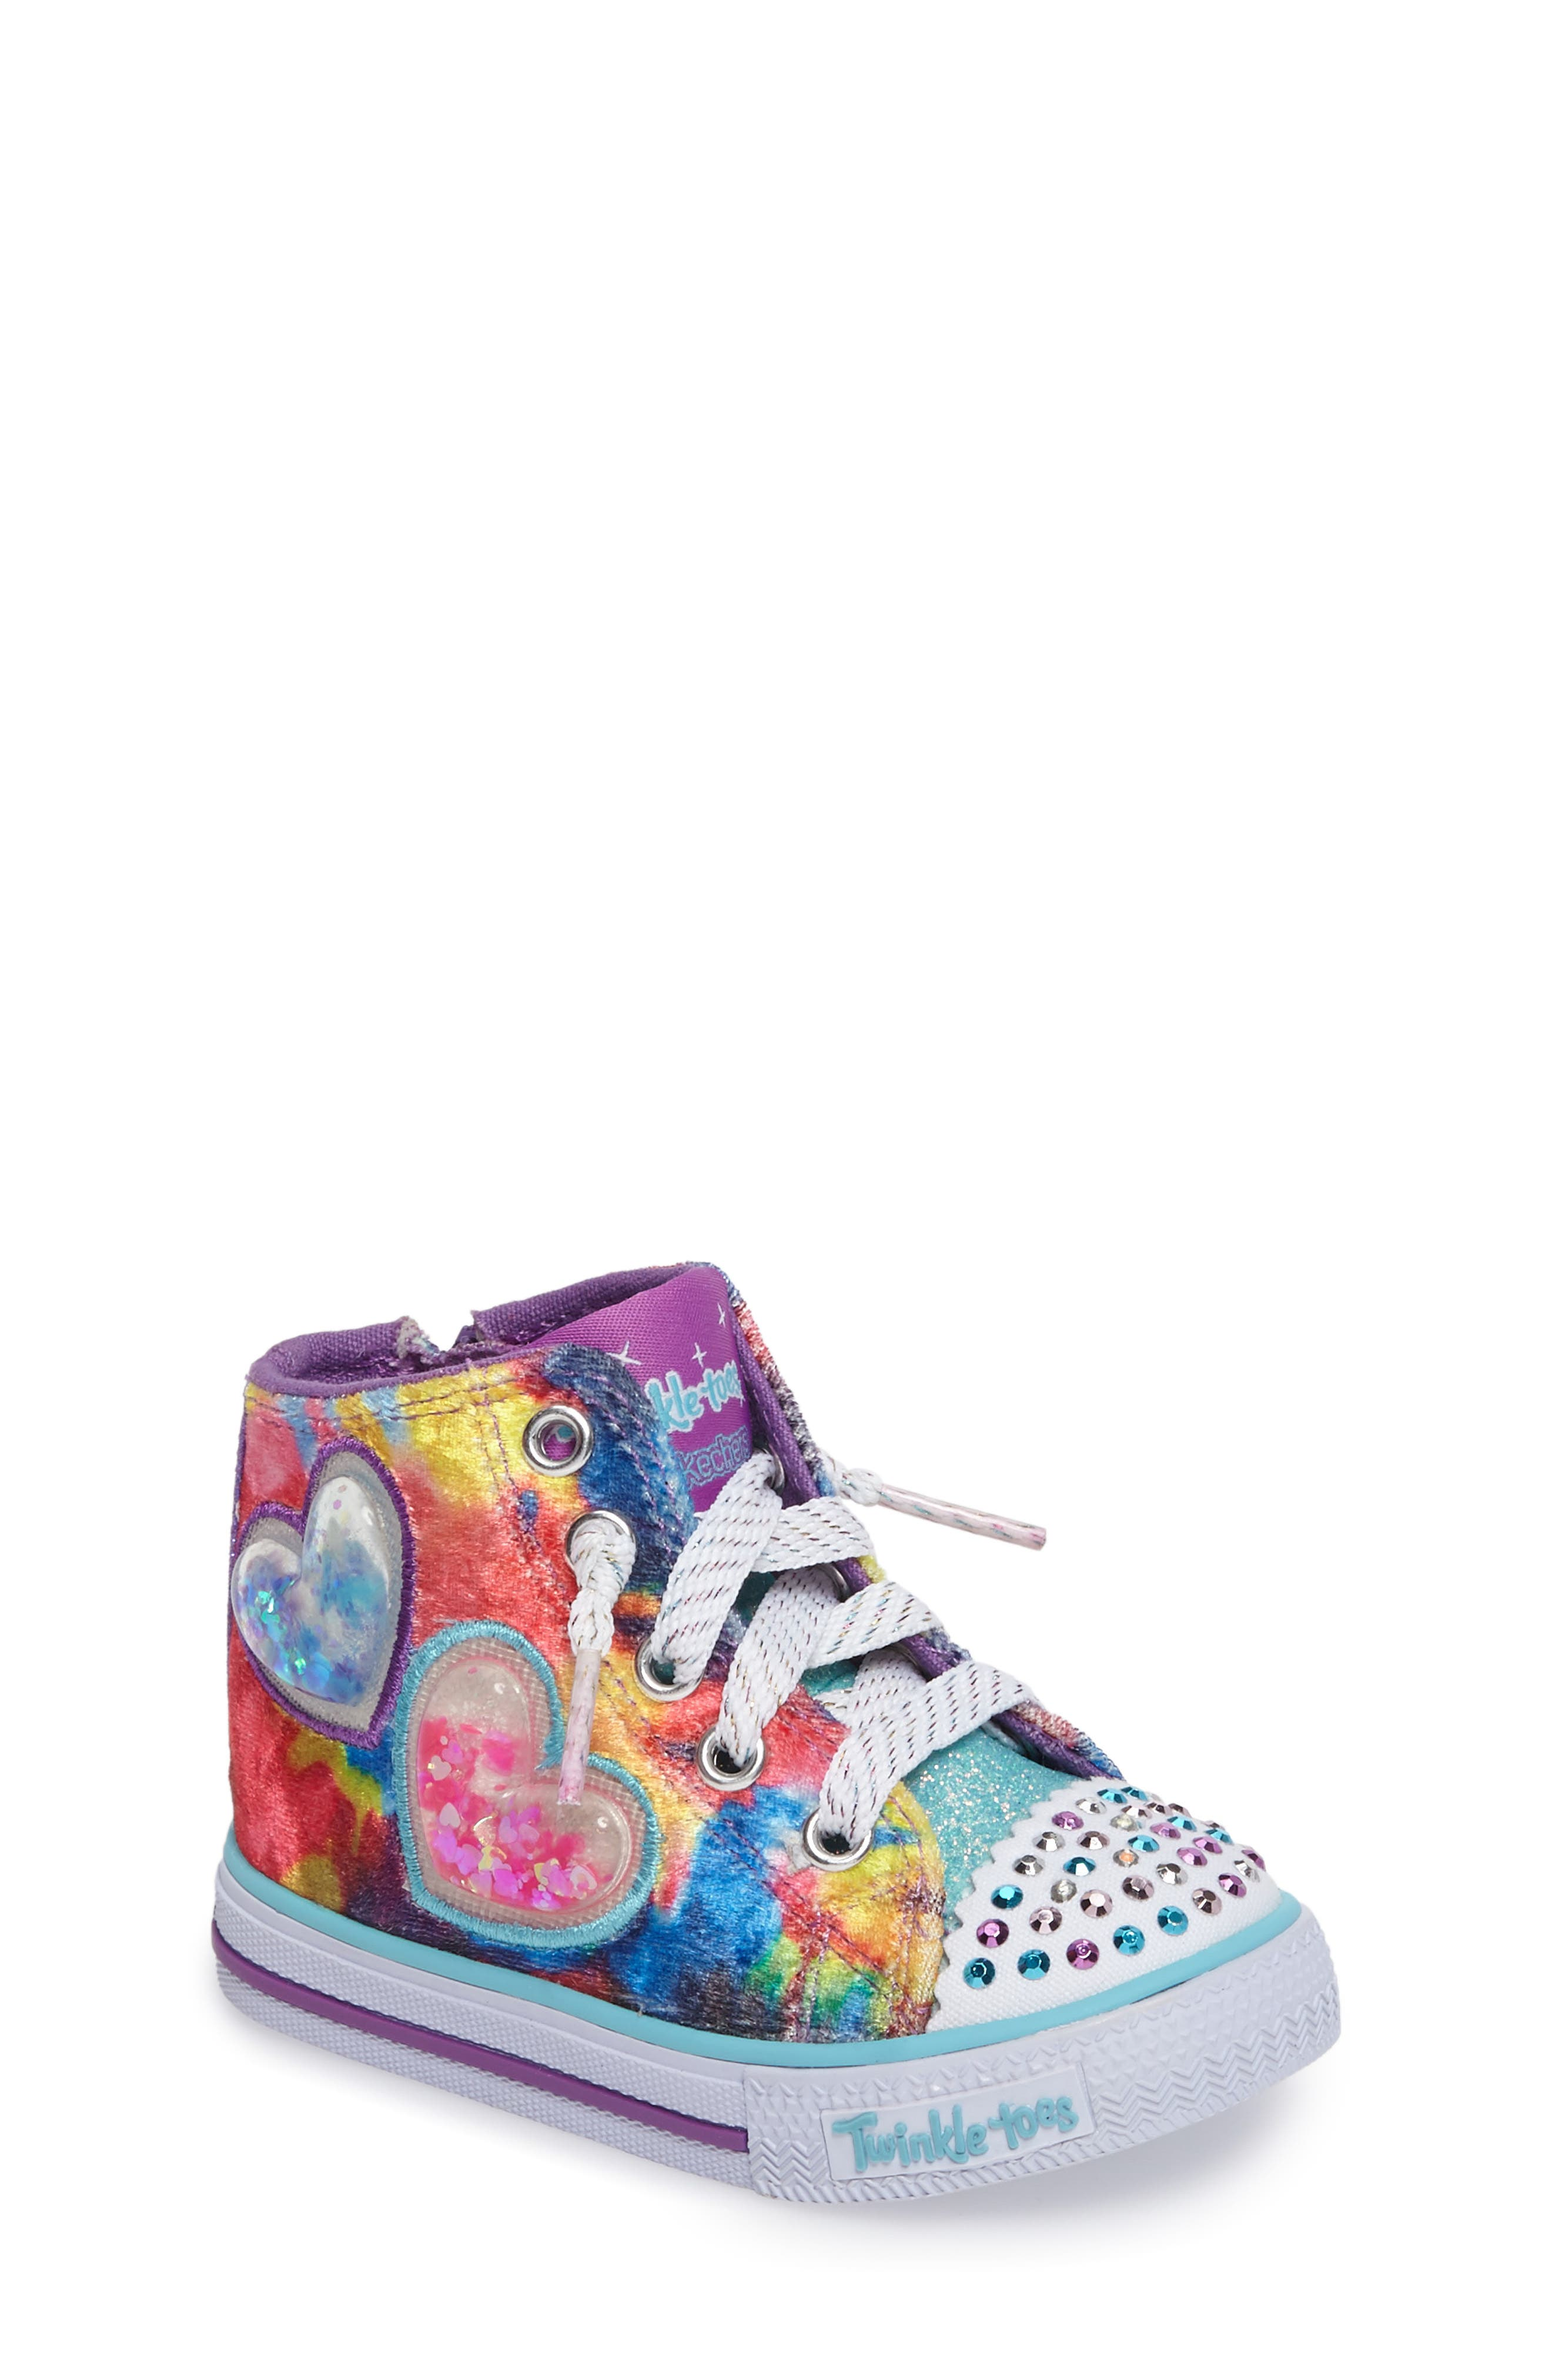 Twinkle Toes Shuffles Light-Up High Top Sneaker,                         Main,                         color, 650